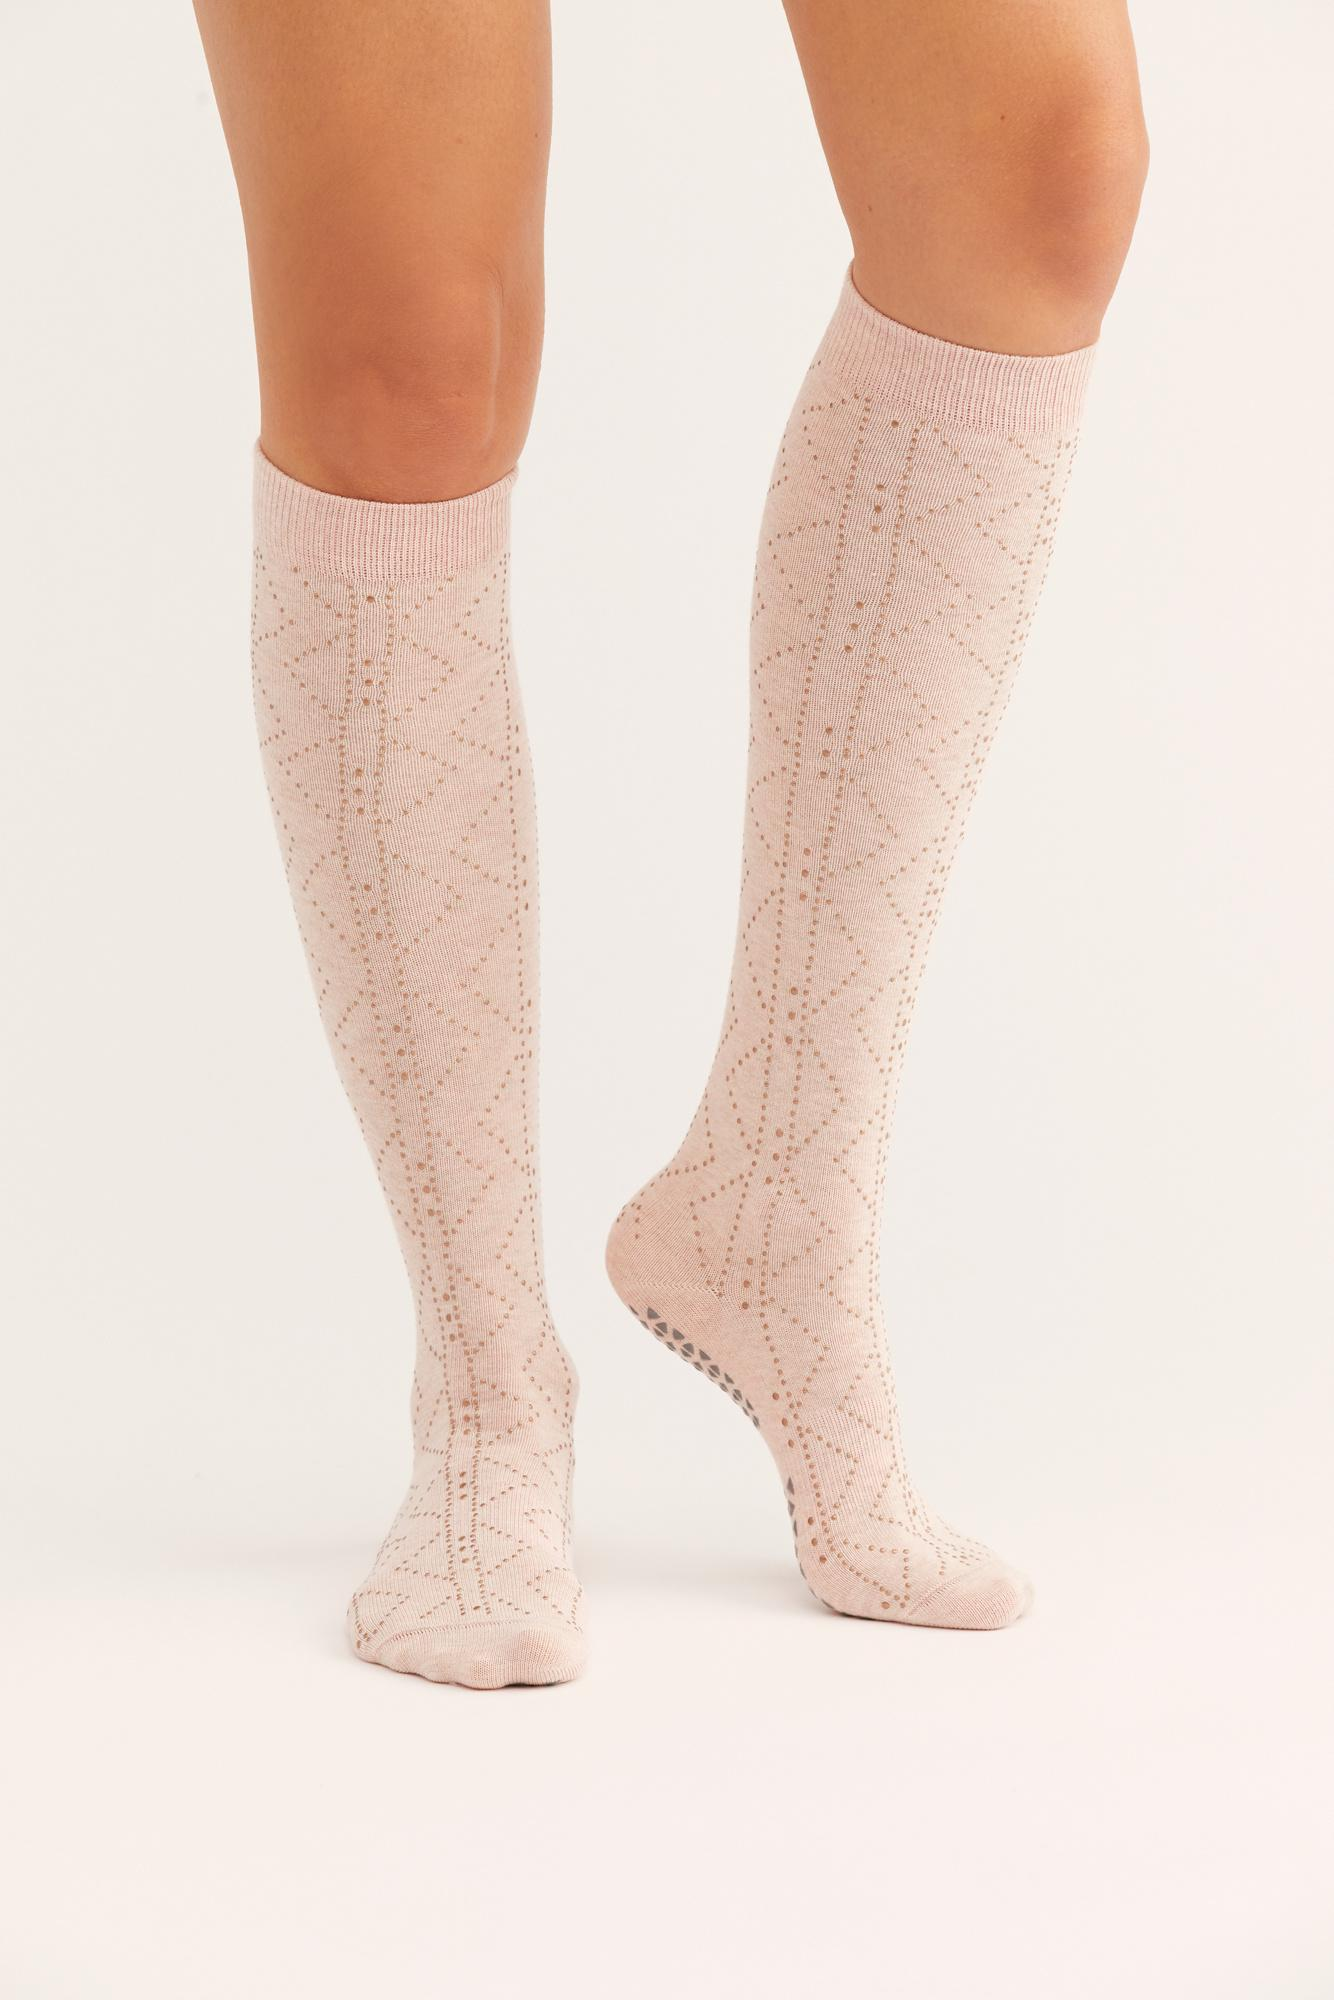 ab5c90864ef Free People Jane Studded Knee-high Grip Sock By Tavi Noir - Lyst